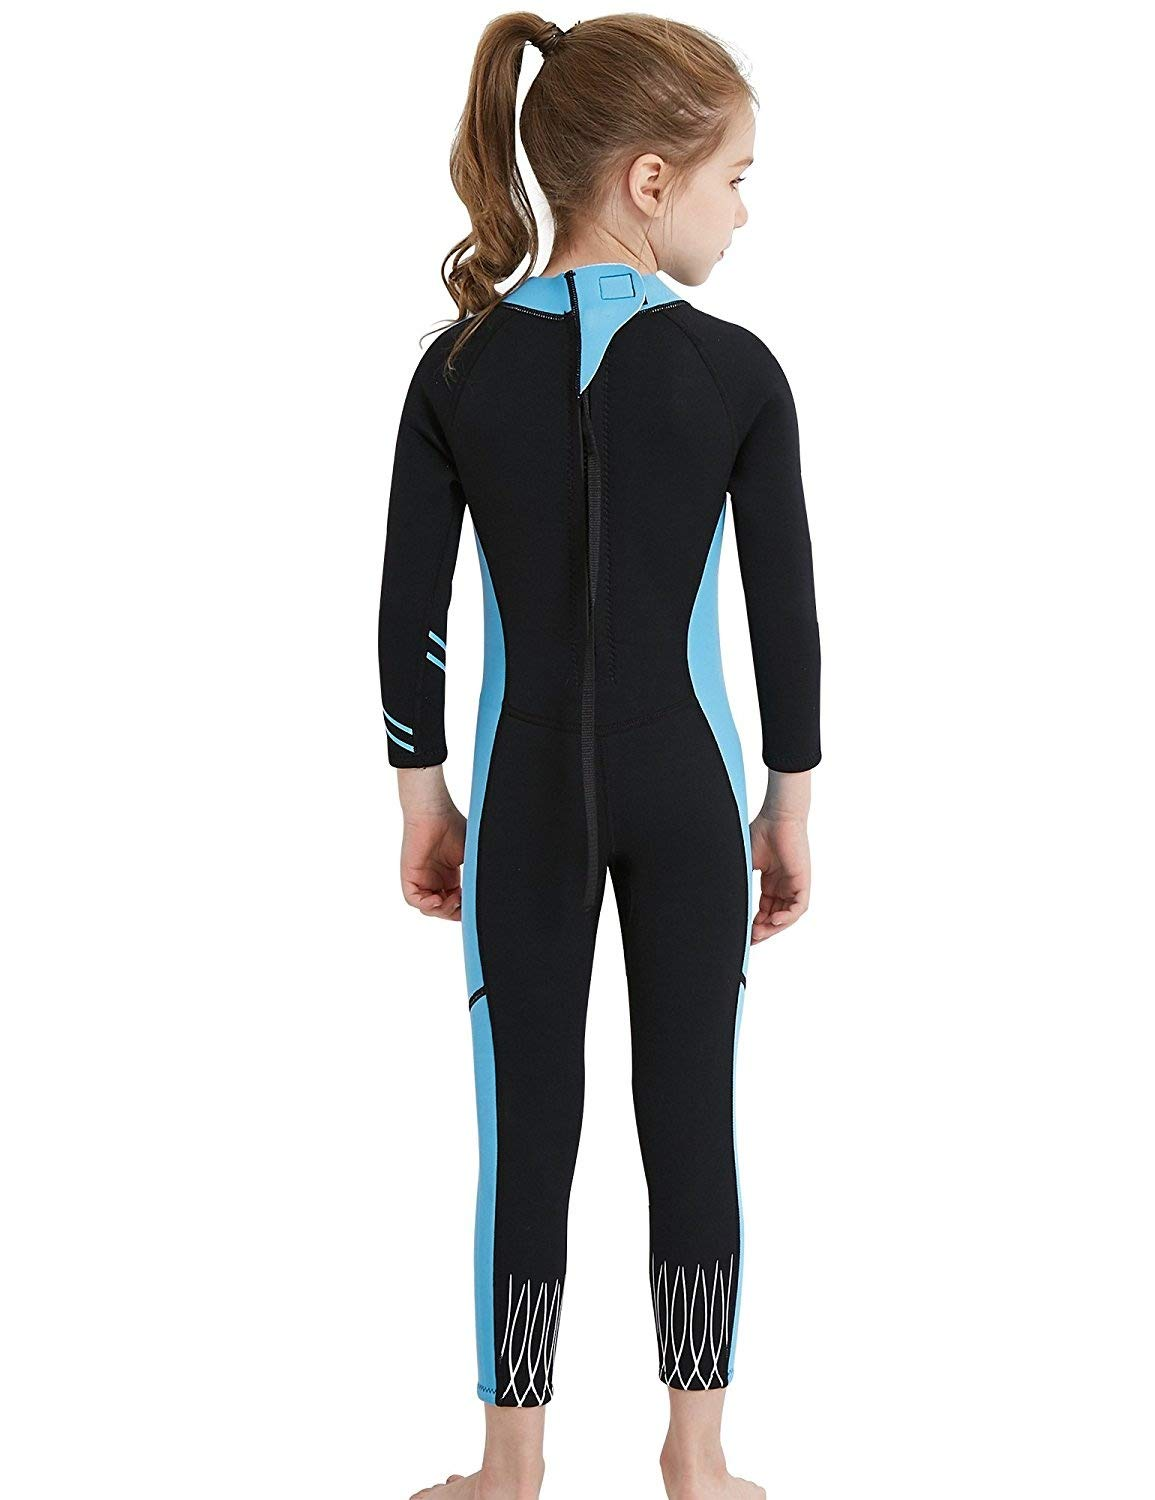 Amazon.com   DIVE   SAIL Kids Wetsuit 2.5mm Neoprene Keep Warm for Diving  Swimming Canoeing UV Protection   Sports   Outdoors 80024eff7